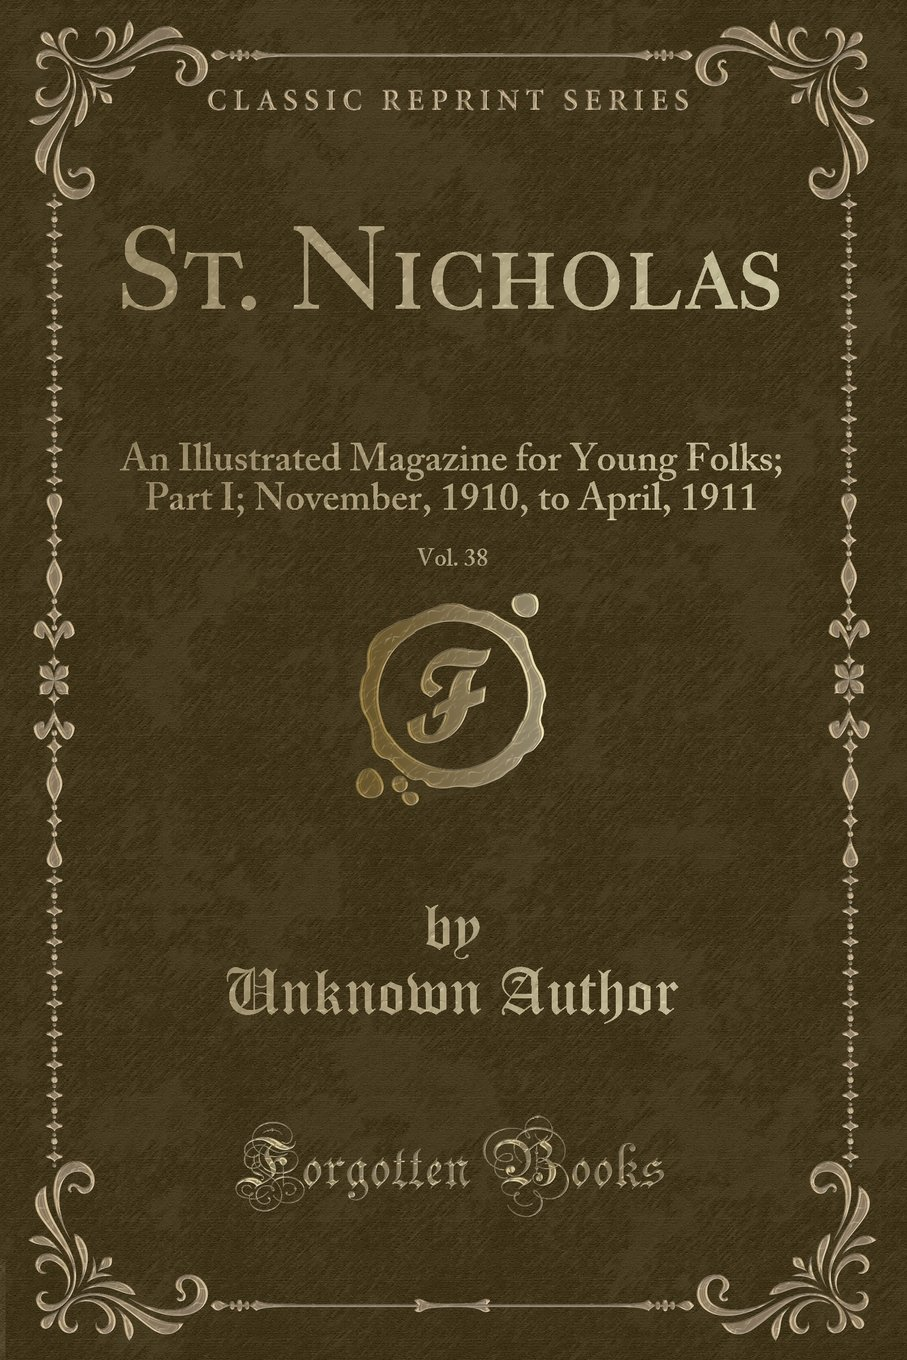 St. Nicholas, Vol. 38: An Illustrated Magazine for Young Folks; Part I; November, 1910, to April, 1911 (Classic Reprint) PDF